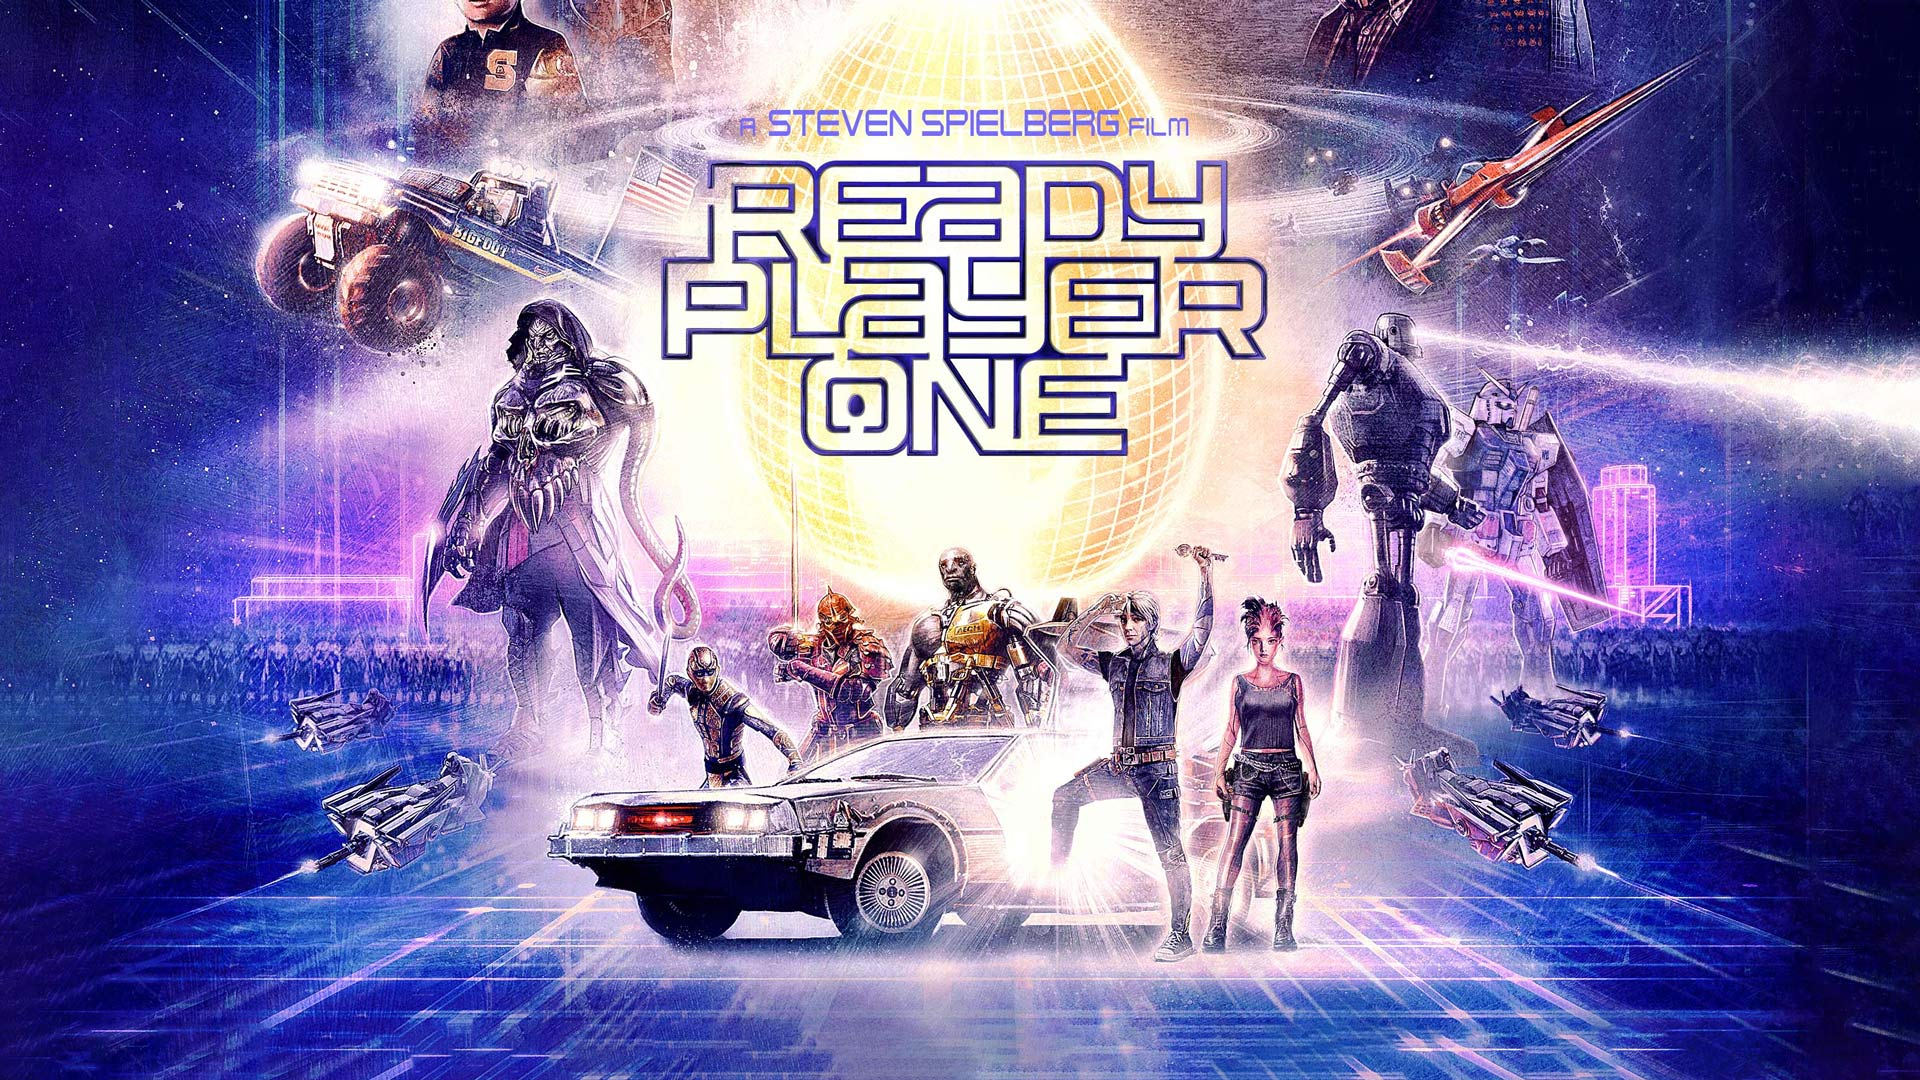 Stylized poster of the main characters video game avatars in Ready Player One.